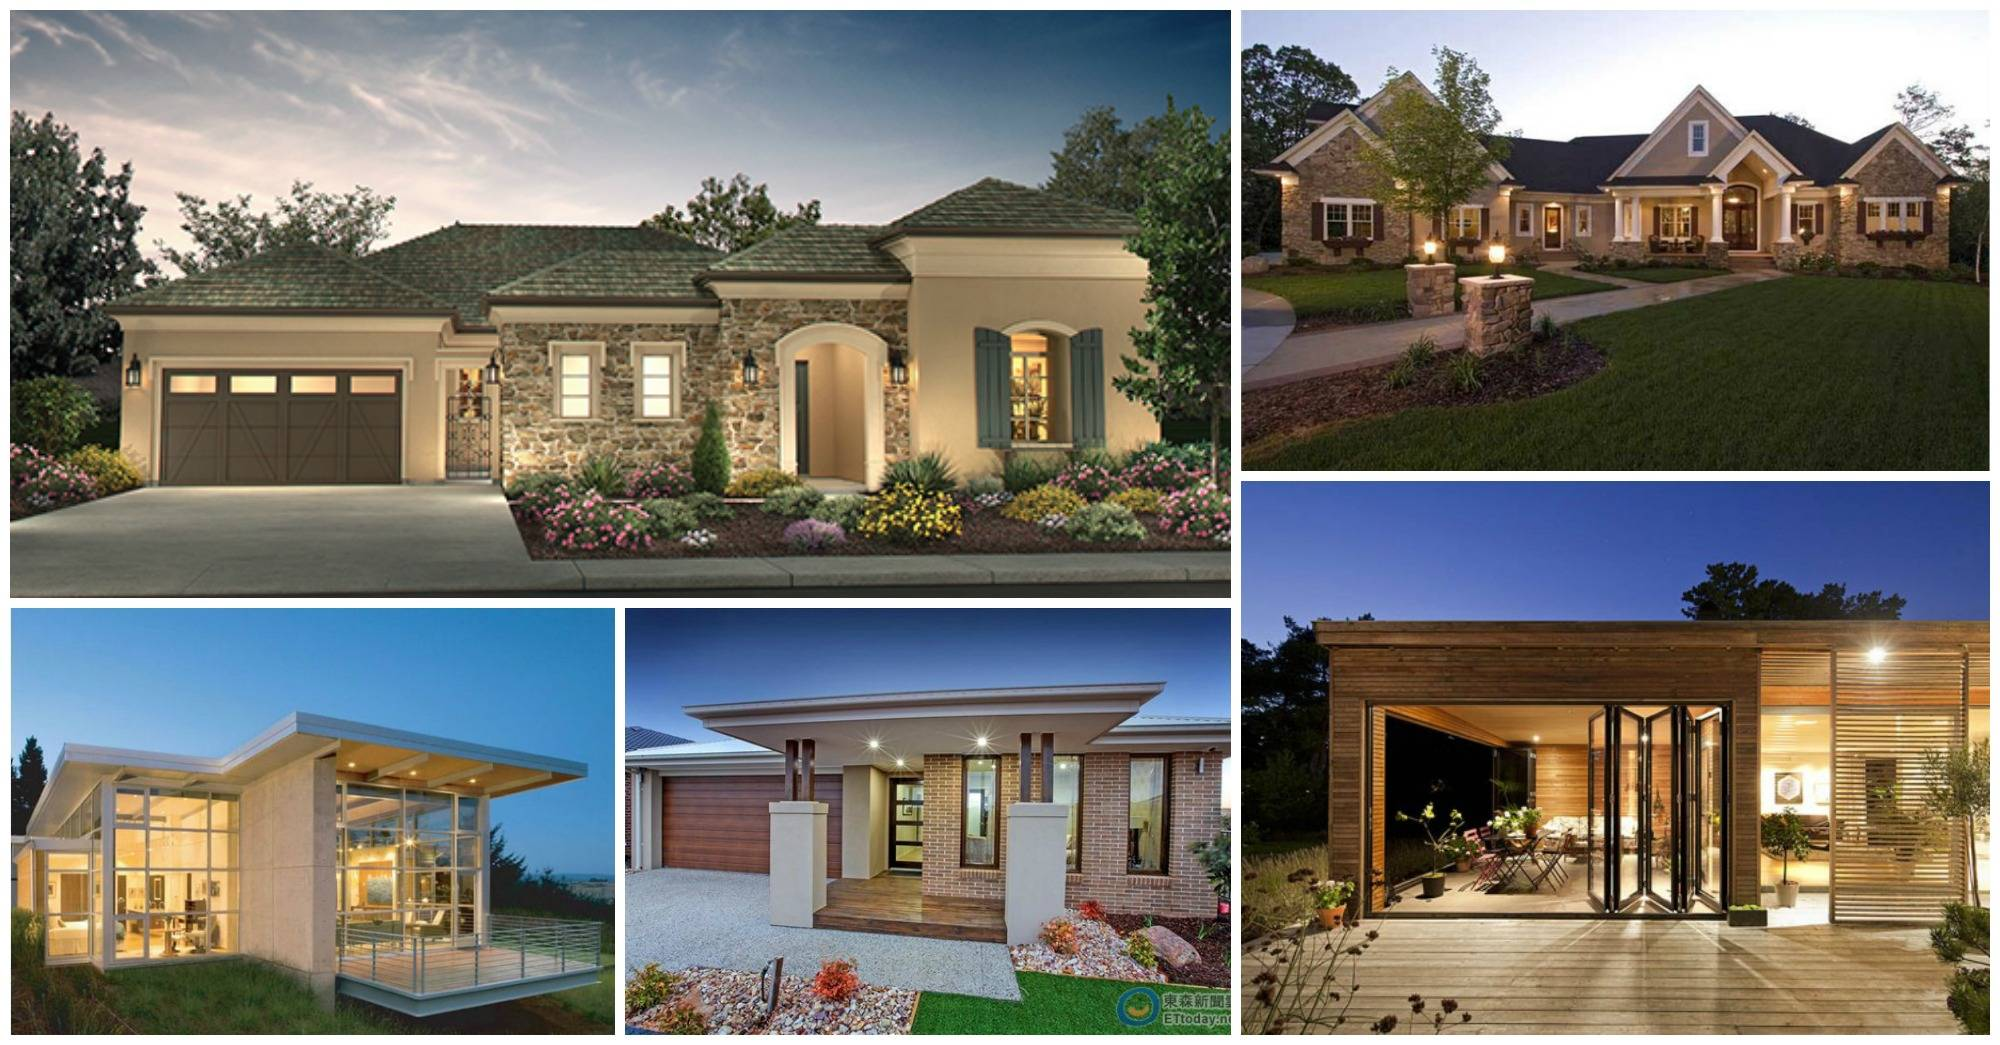 Beautiful One Story Houses Designs Love